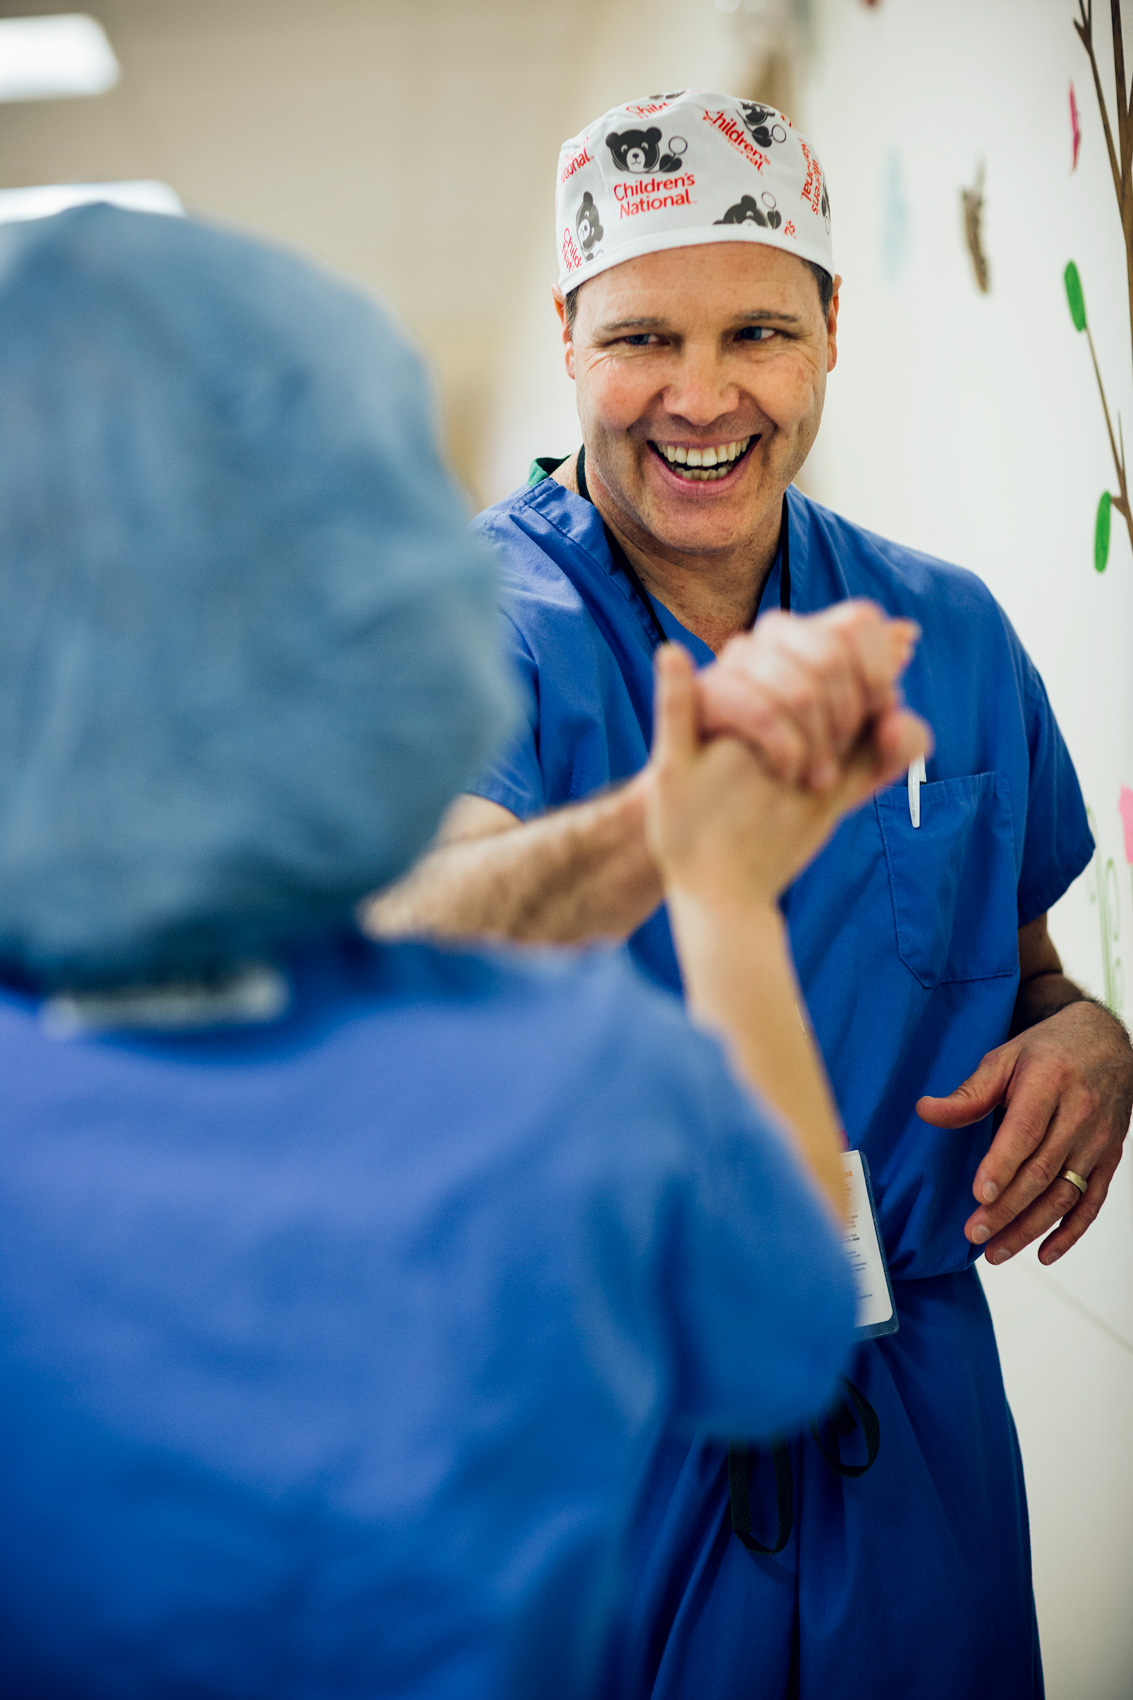 pediatric surgeon high fiving aid, washington dc healthcare photography